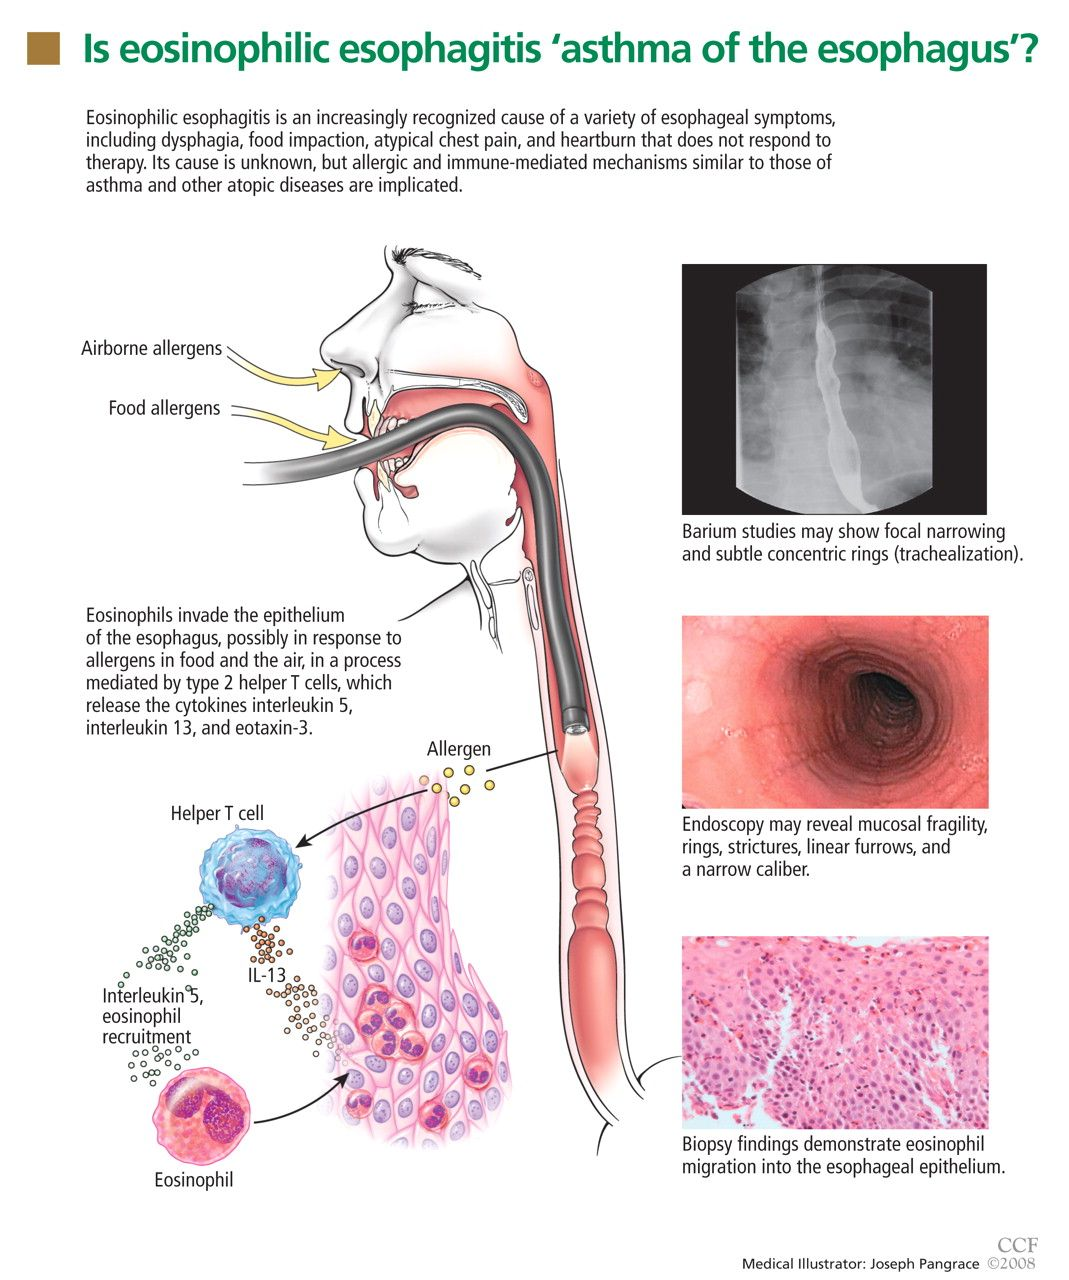 medium resolution of eosinophilic esophagitis an increasingly recognized cause of dysphagia food impaction and refractory heartburn cleveland clinic journal of medicine